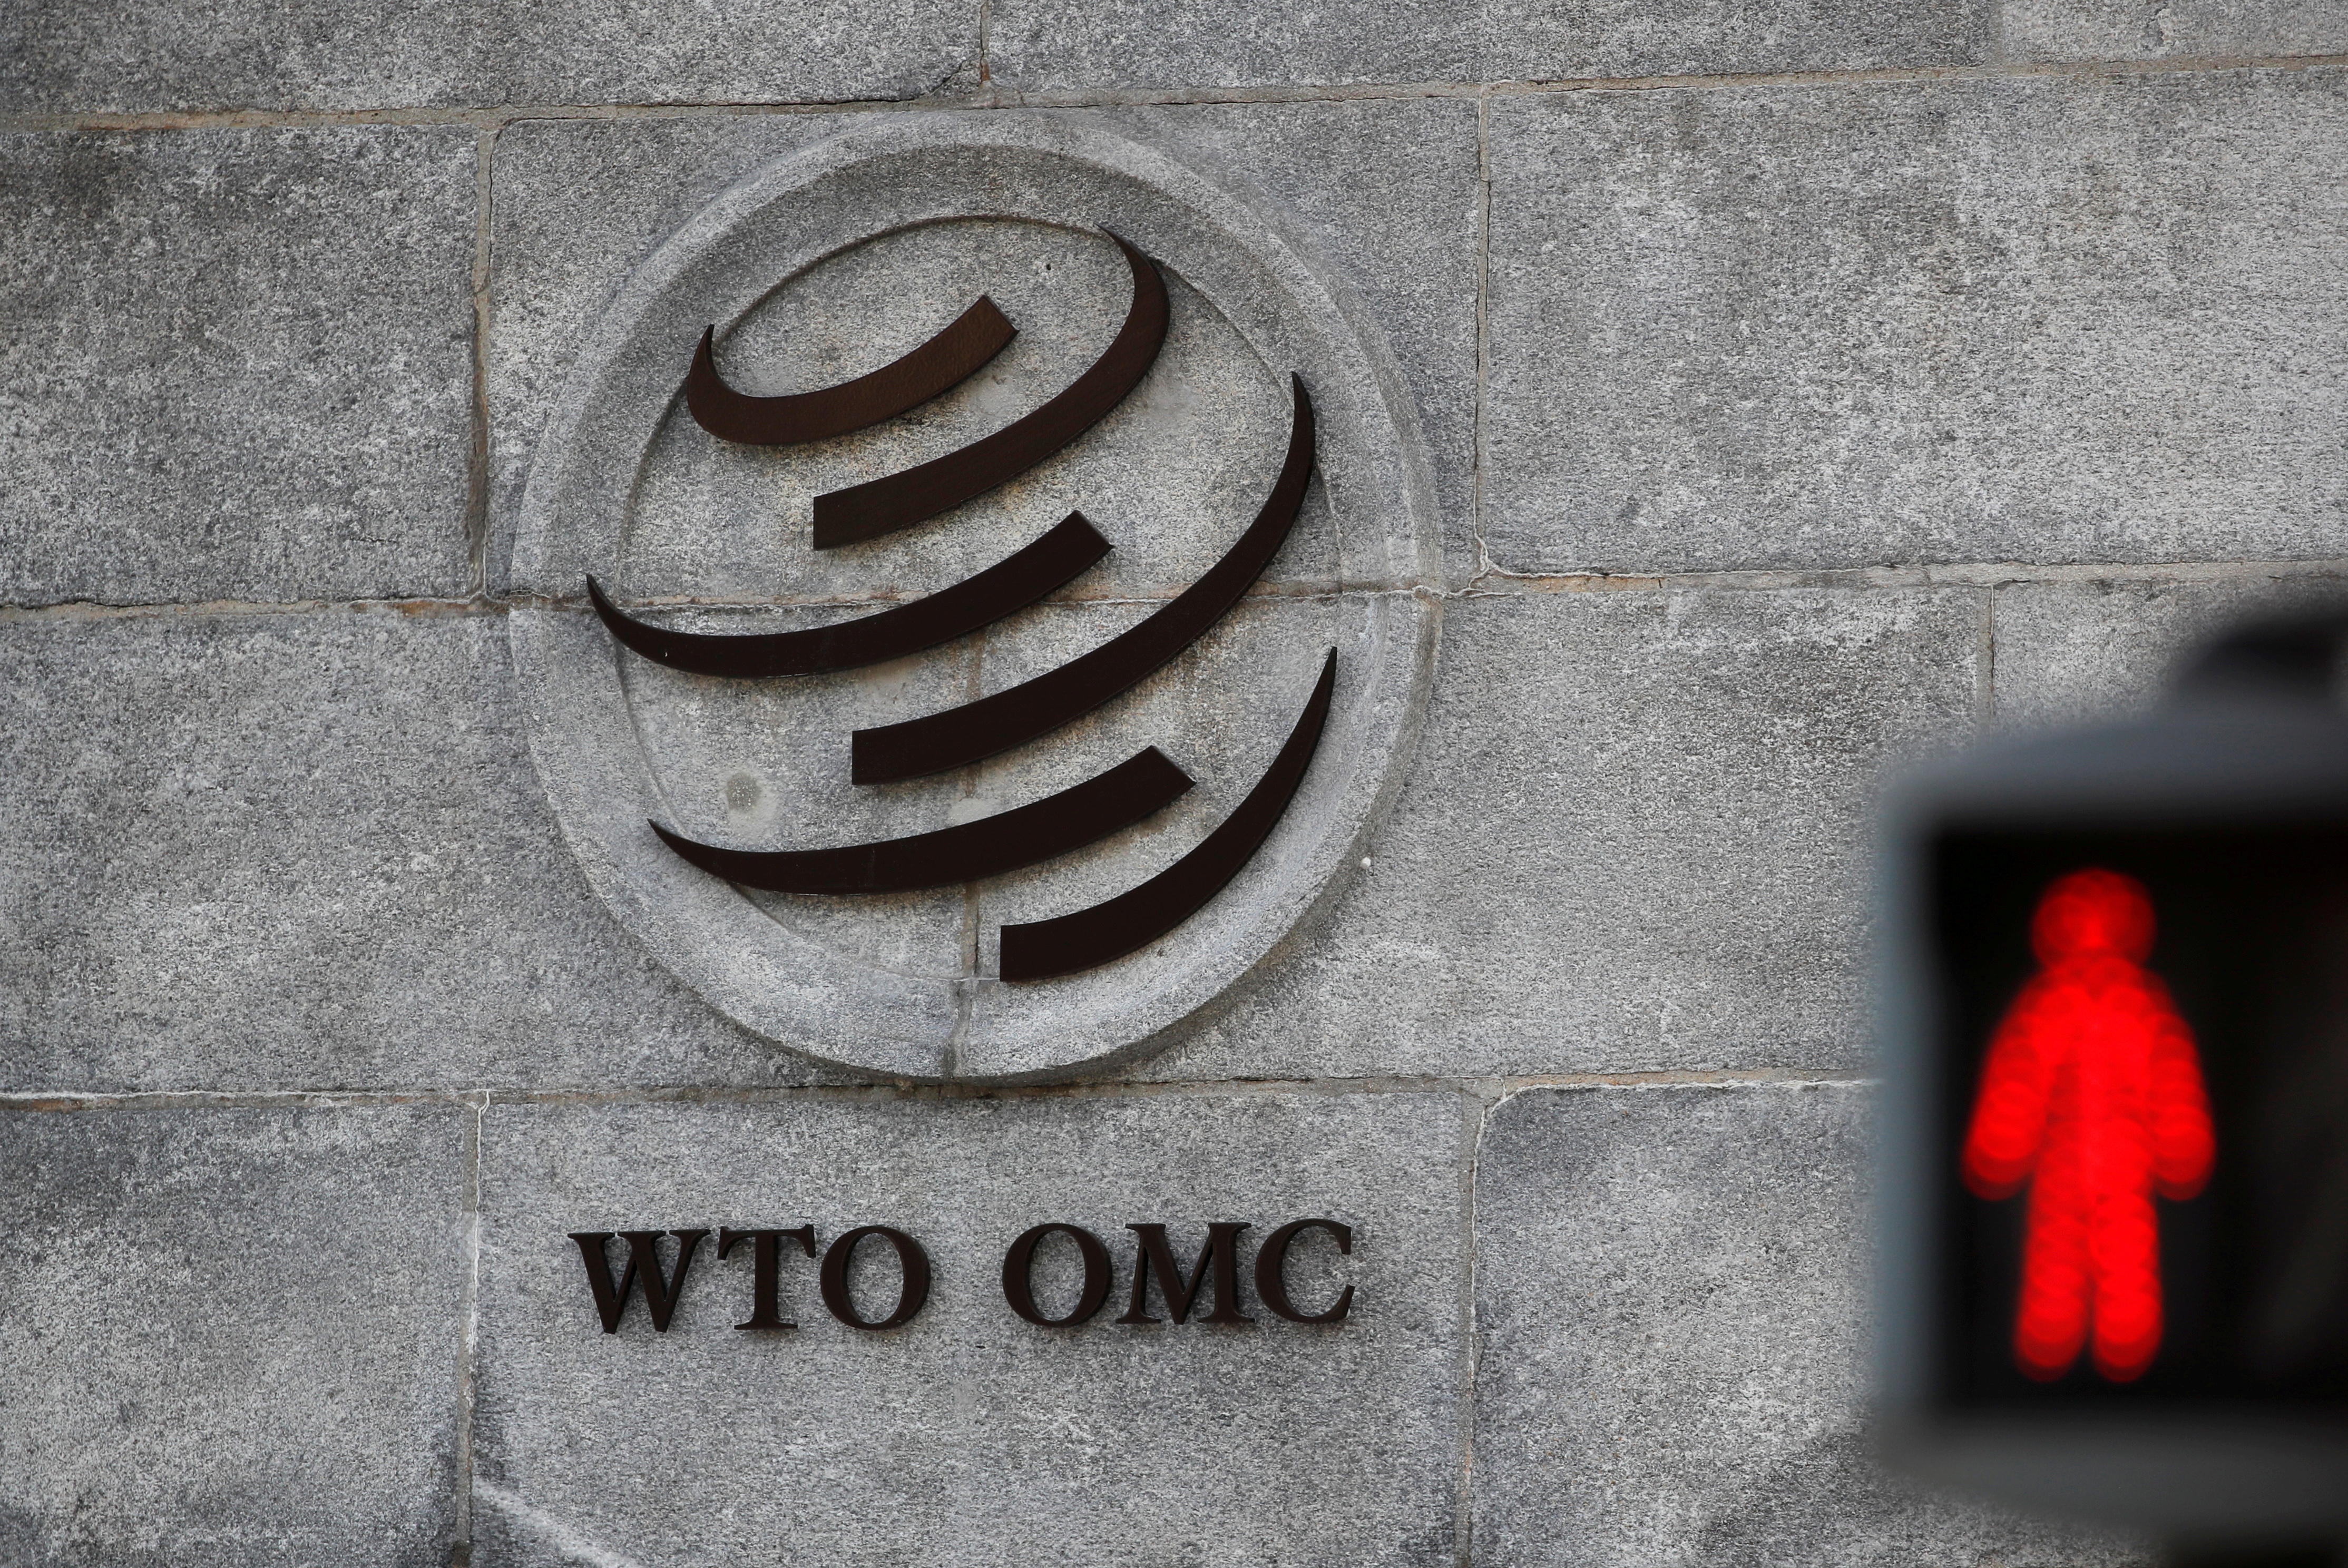 China pulls WTO suit over claim to be a market economy